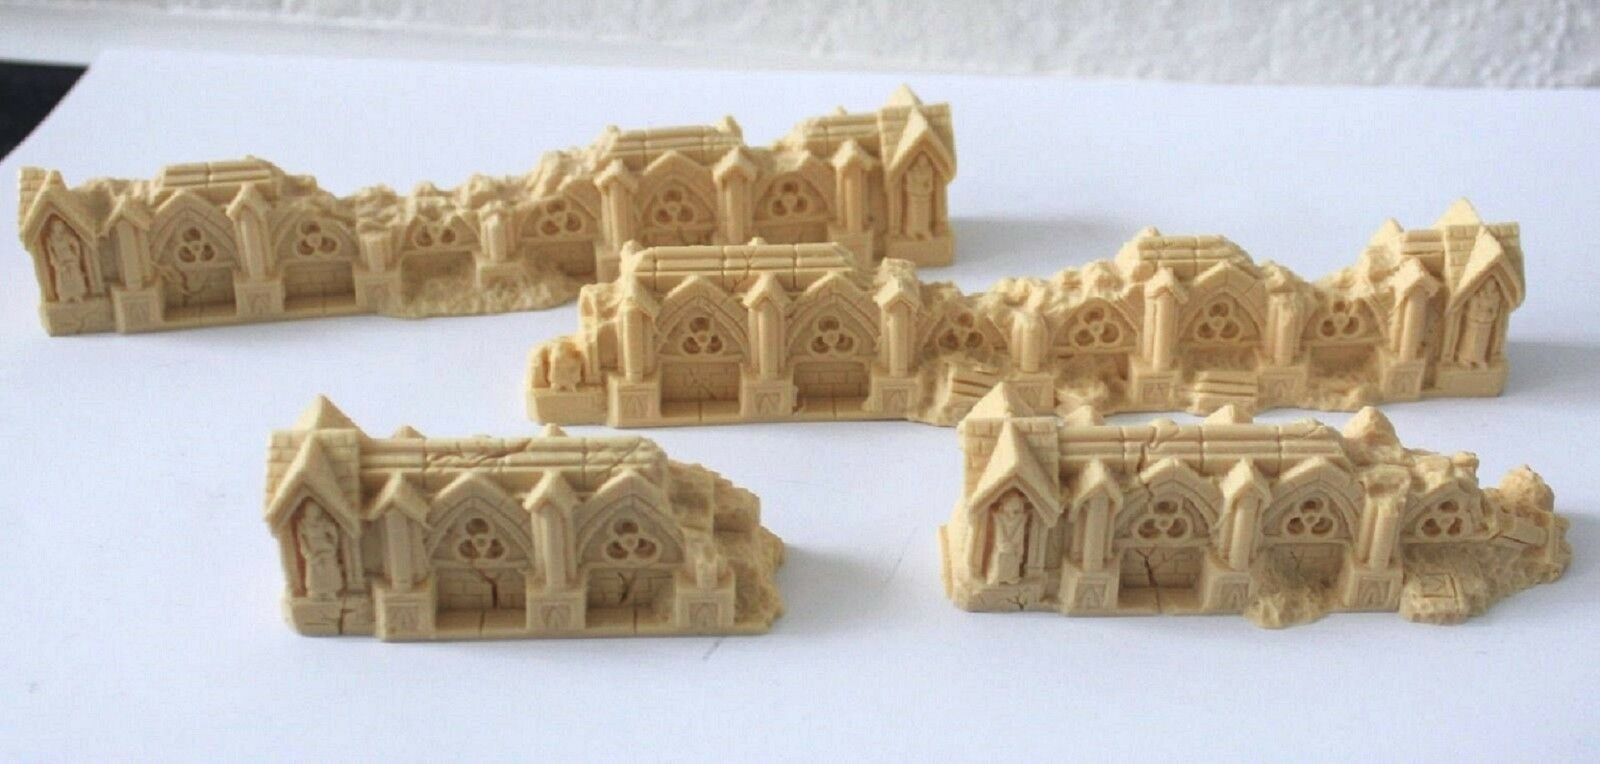 ARMORCAST - Gothic Ruined Walls  x 2 pieces - Wargames Scenery & Terrain